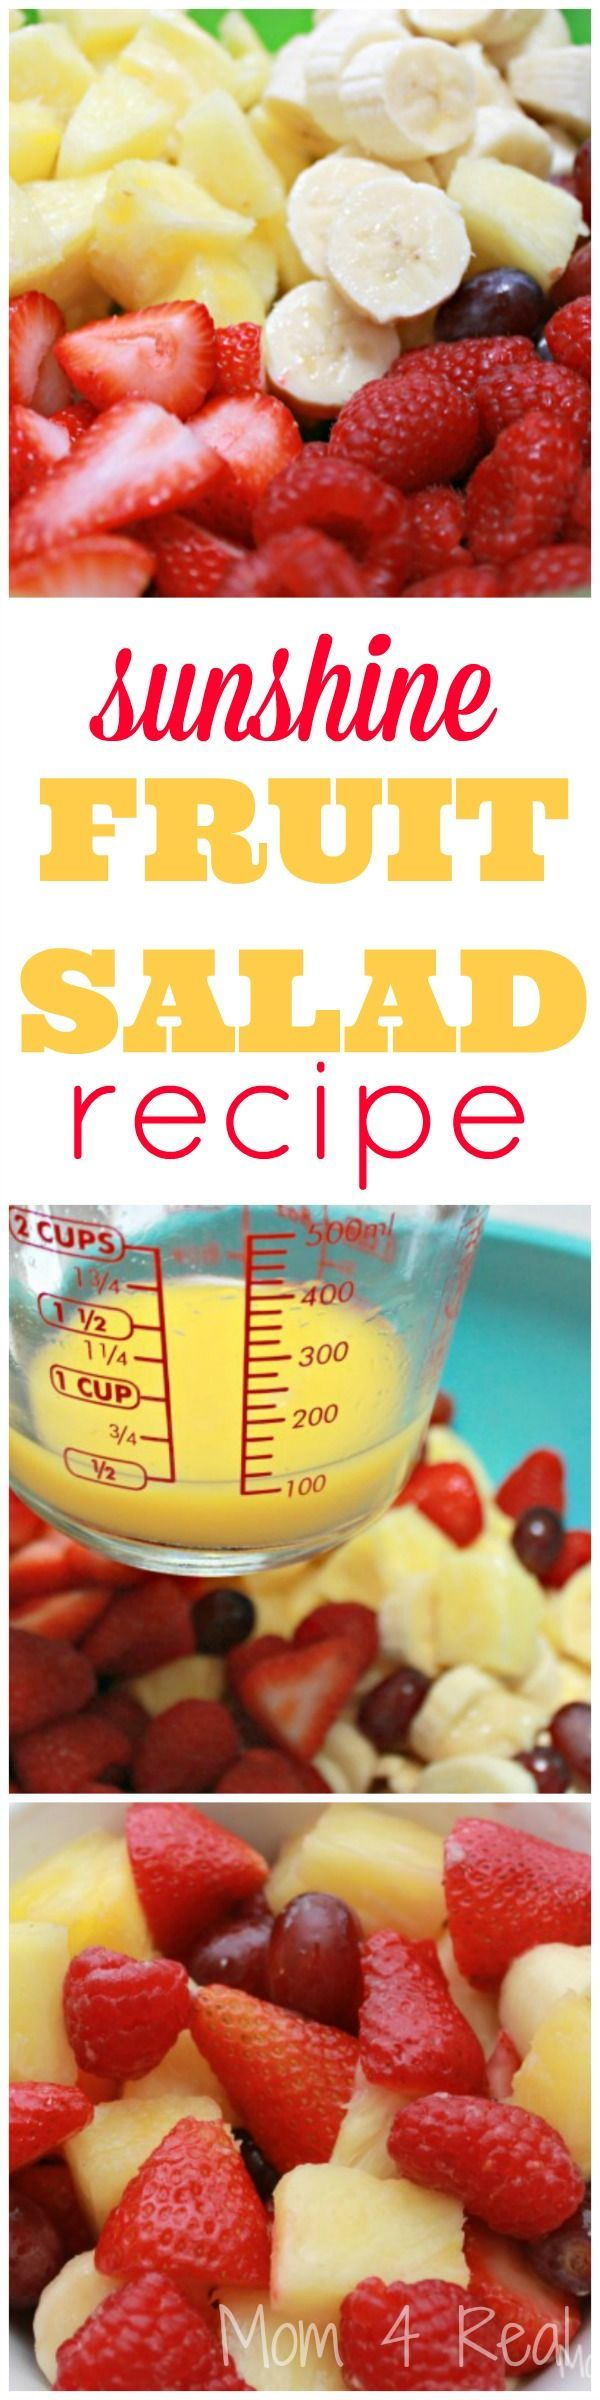 Sunshine Fruit Salad Recipe - Mom 4 Real